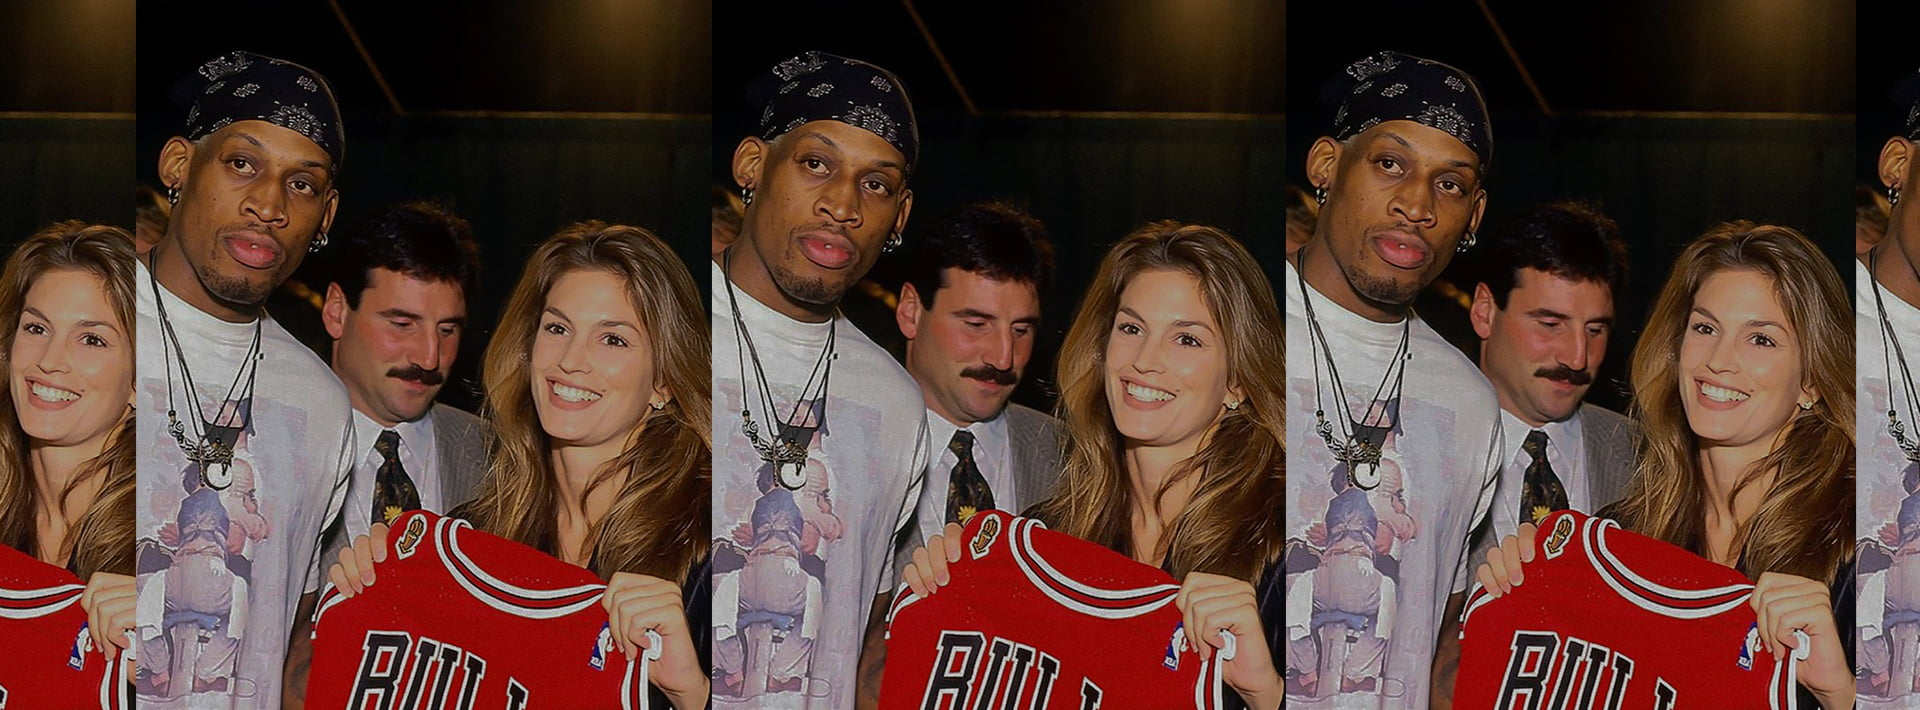 Cindy Crawford dunking in Jordans & a 90s Chicago Bulls jersey is what shooting hoops should look like.